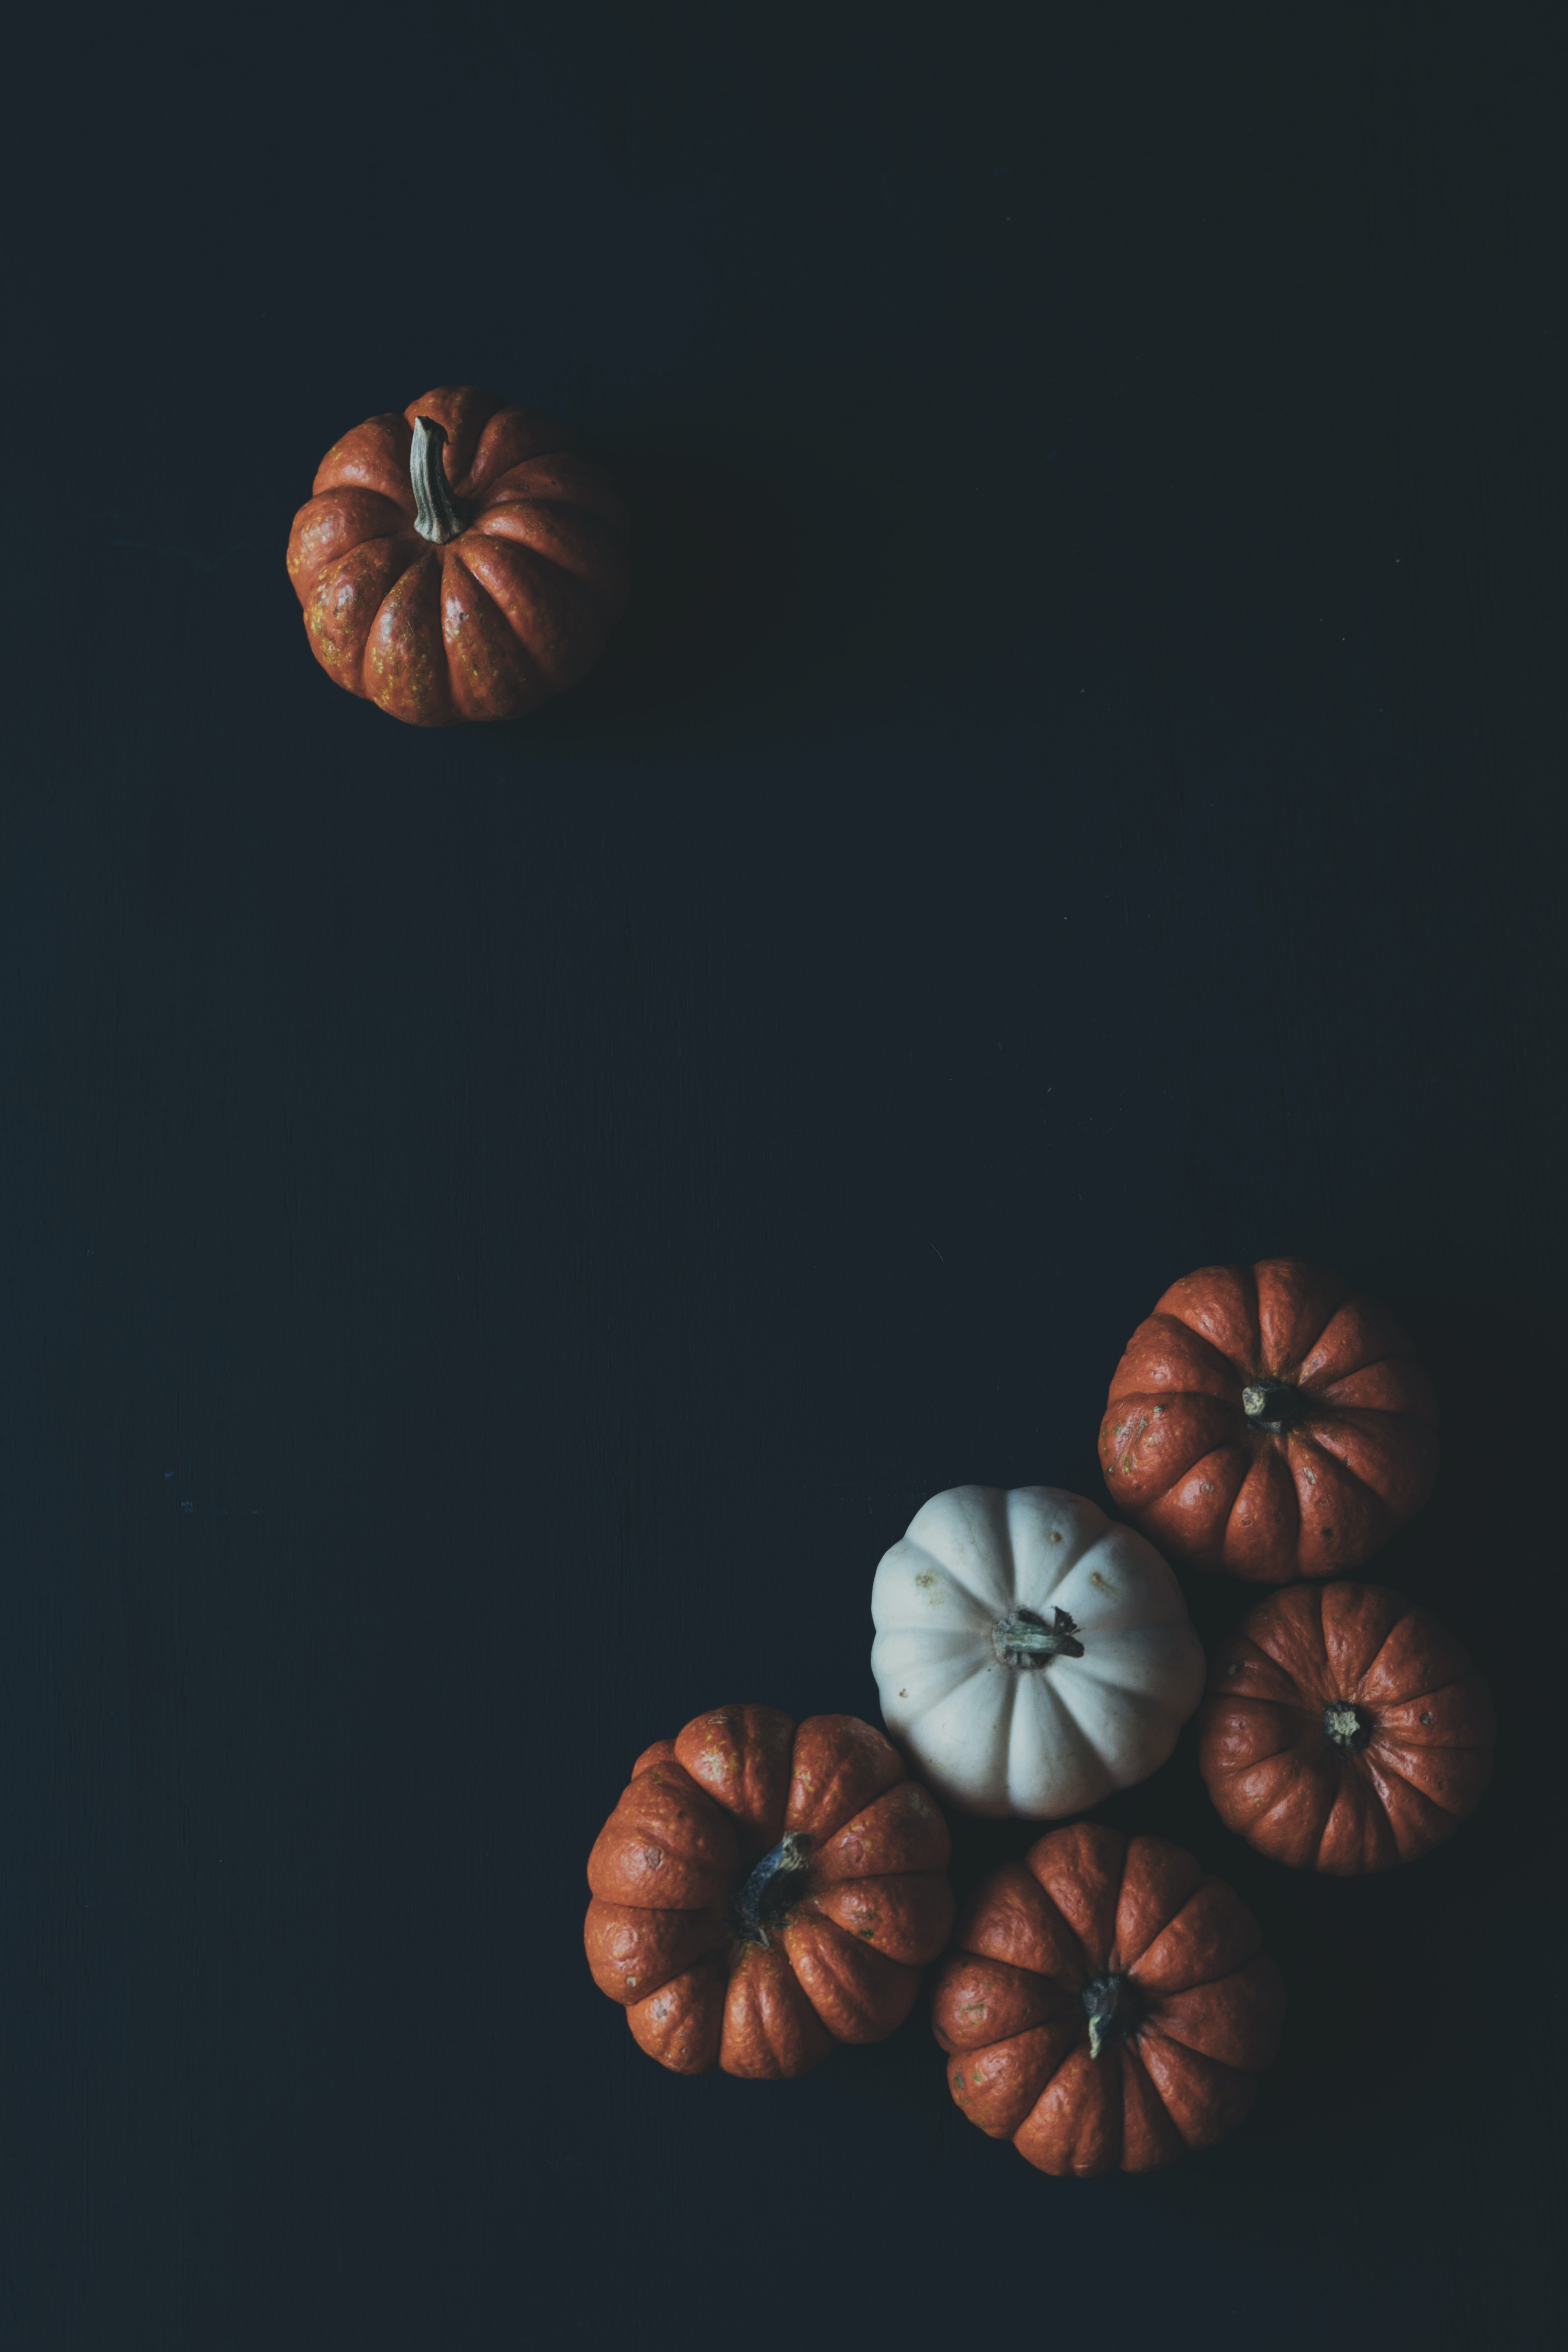 Orange and white pumpkins on a black surface by Scott Webb Photography